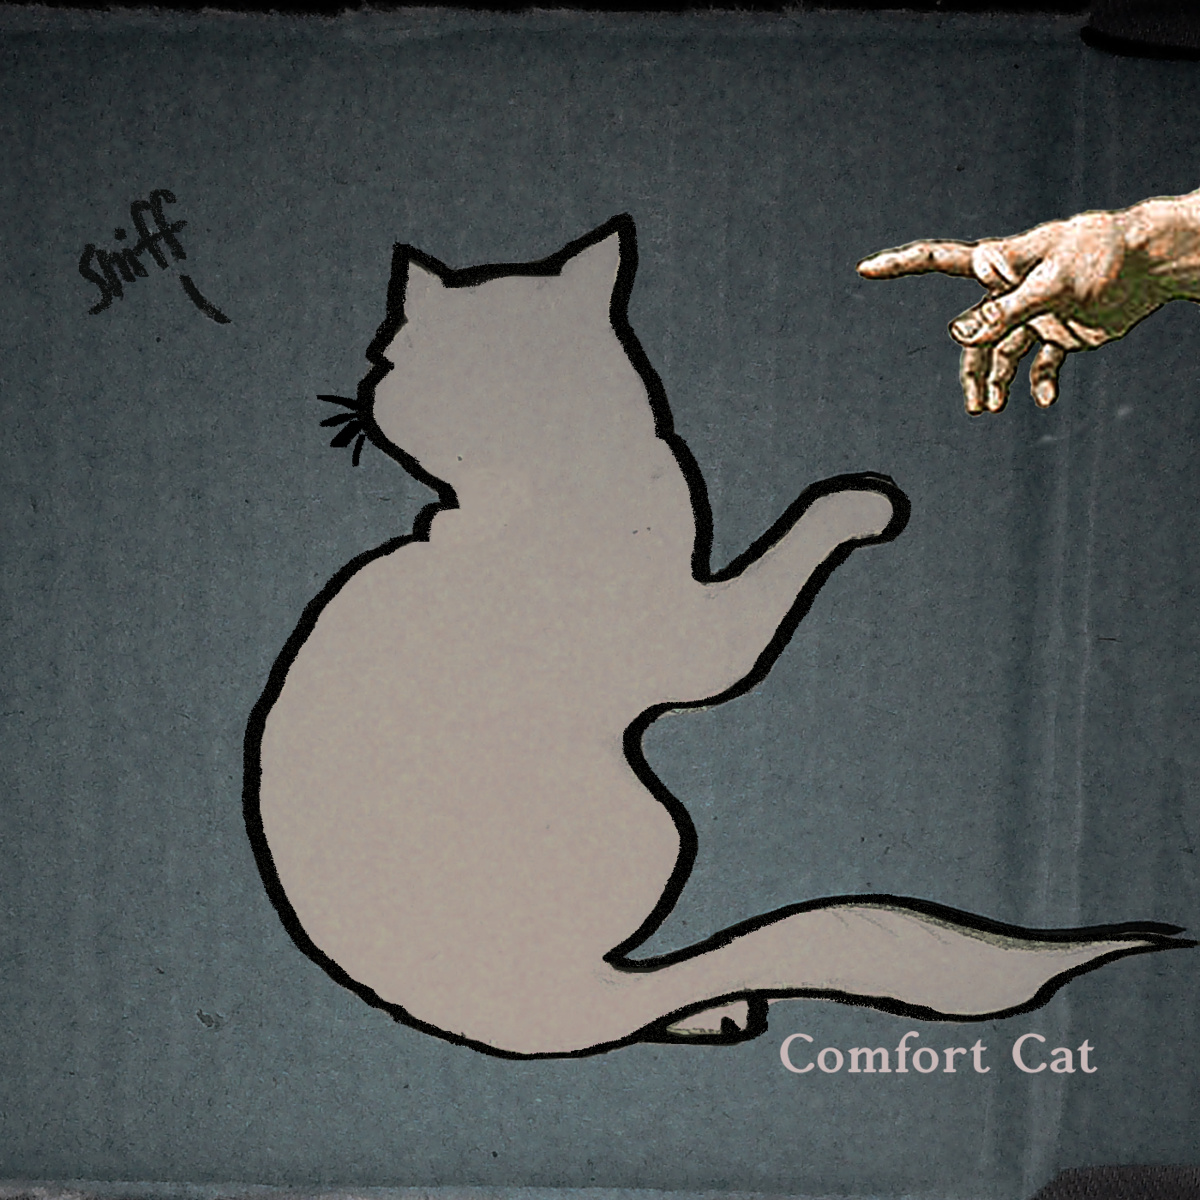 Artist:  Comfort Cat   Title:  sniff   Credit:  Mastering   Year:  2014